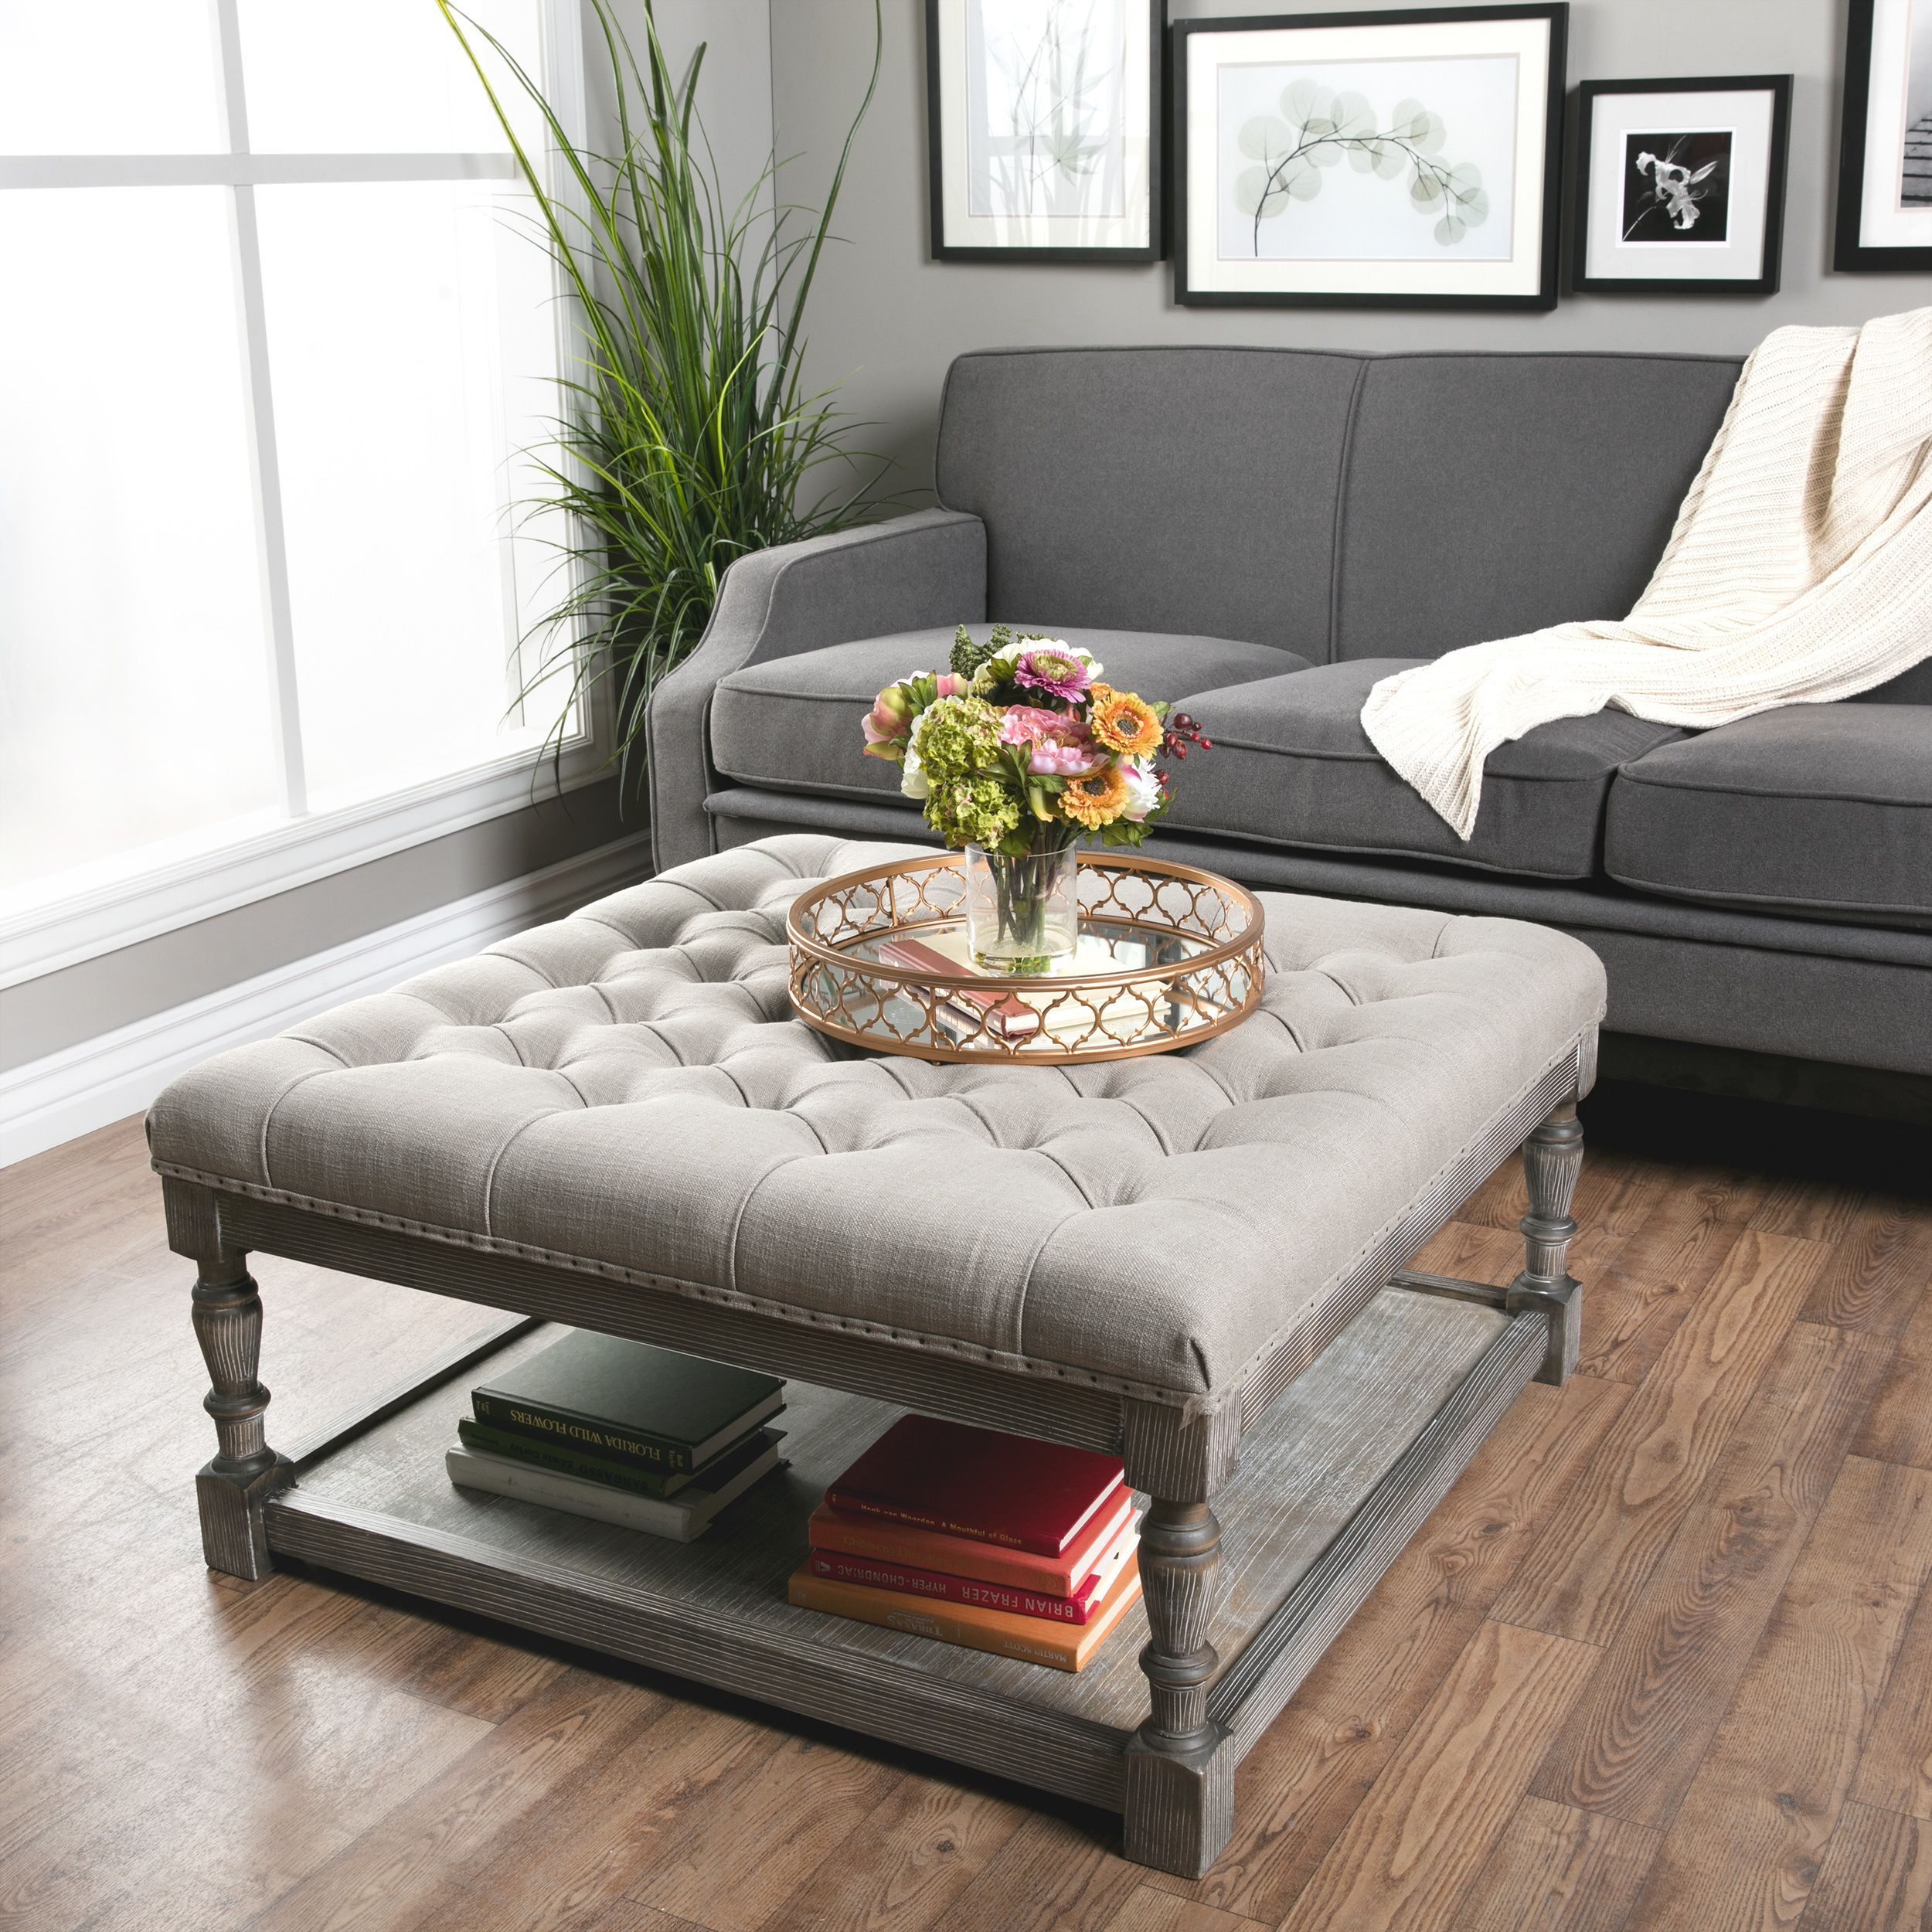 ottoman coffee tables living room leather sets creston beige linen tufted brown size medium products